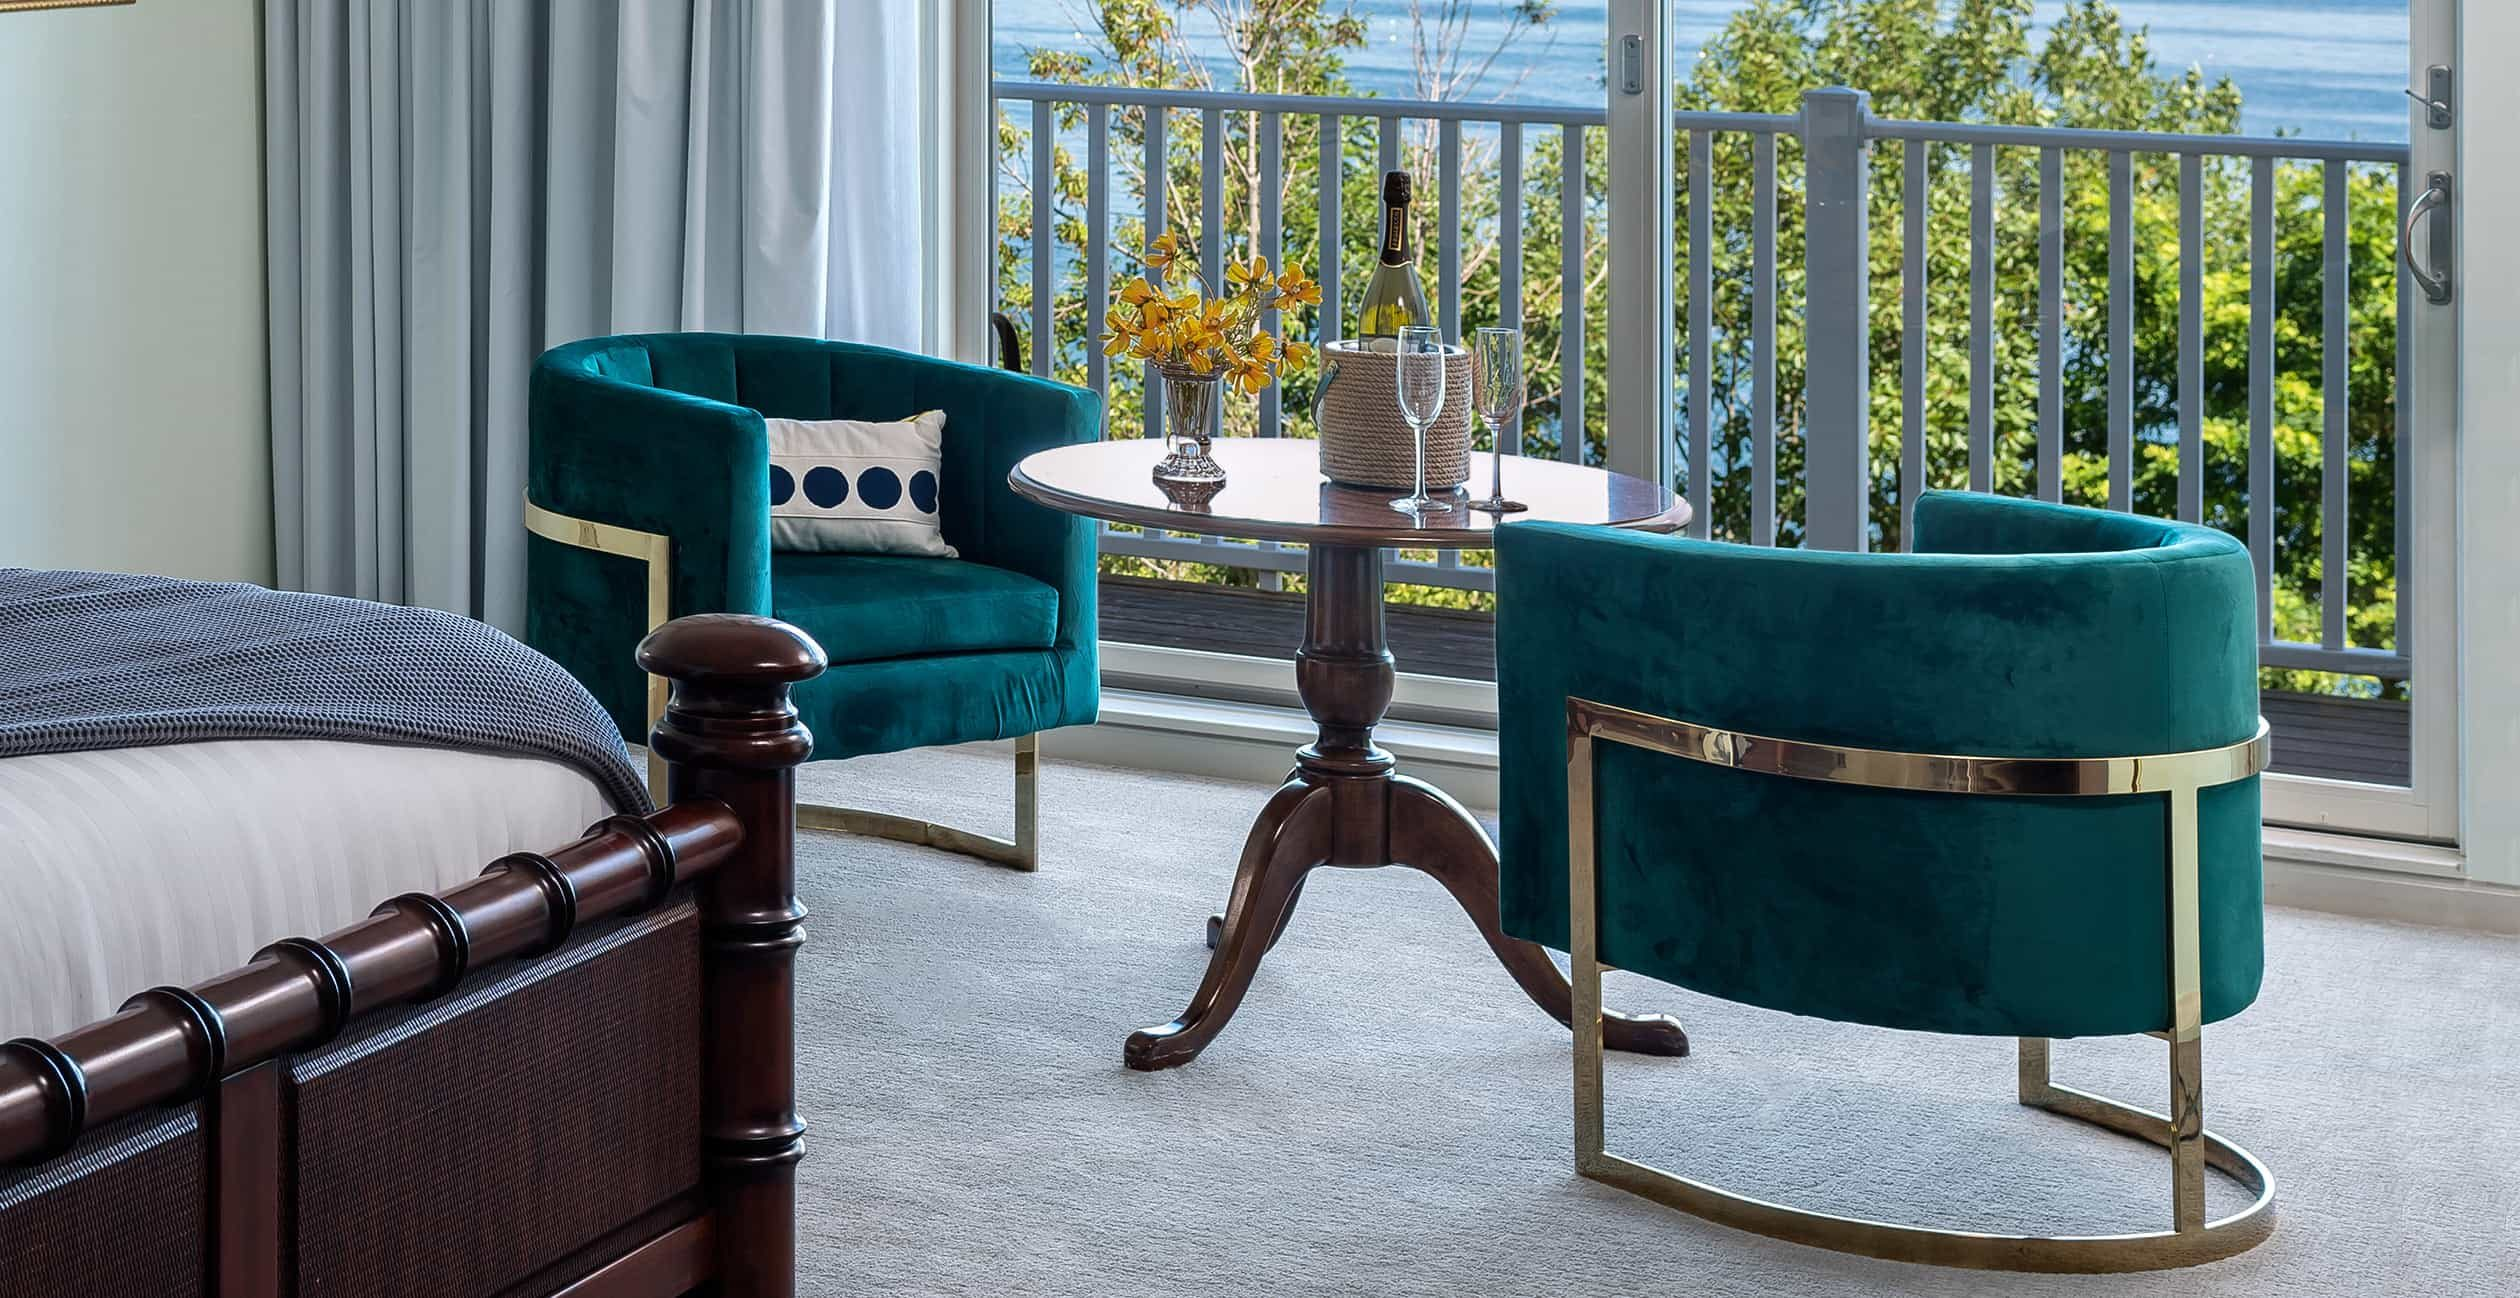 Plush chairs with Ocean view in Island King Room